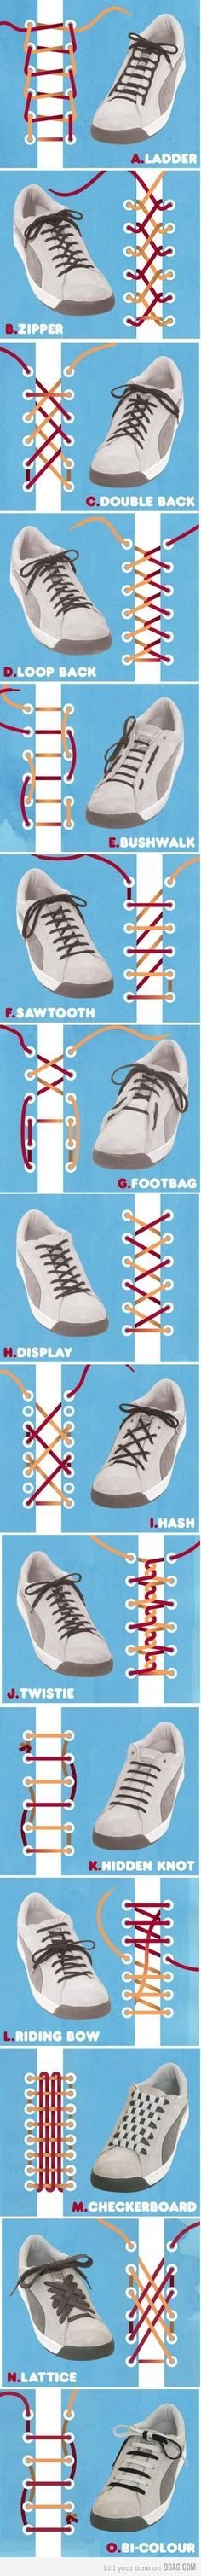 Who knew there were so many different ways to tie your shoes?: